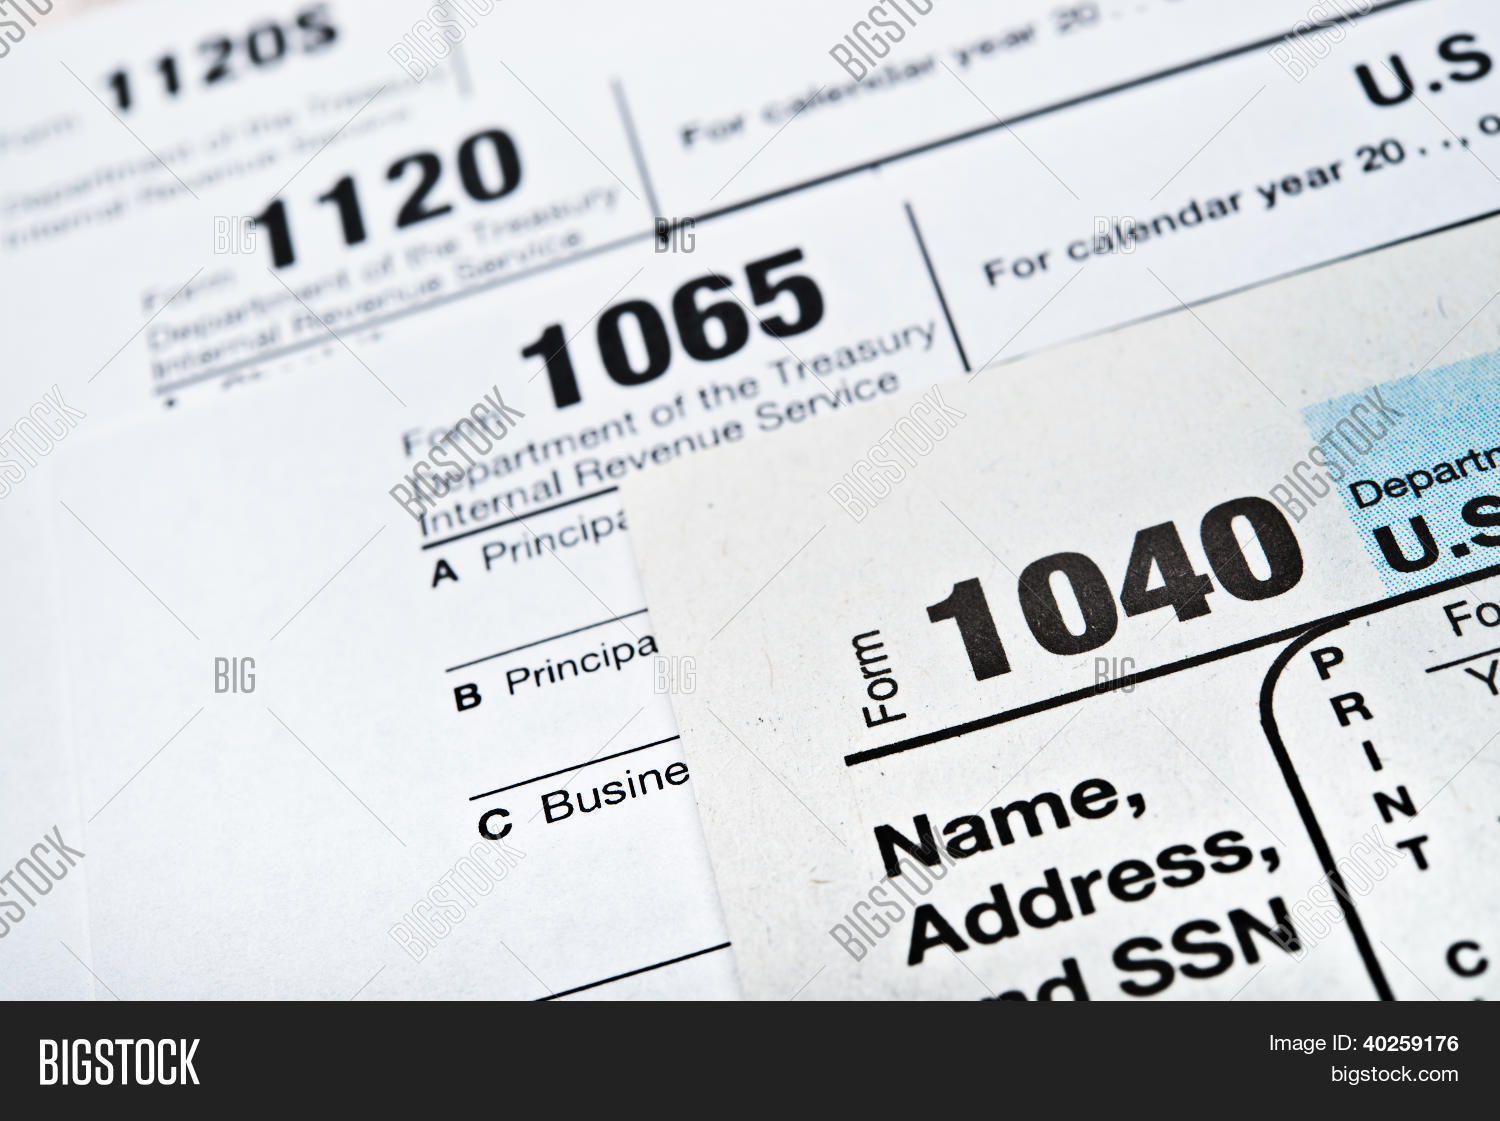 Us income tax return forms 1040 image photo bigstock us income tax return forms 104010651120 falaconquin